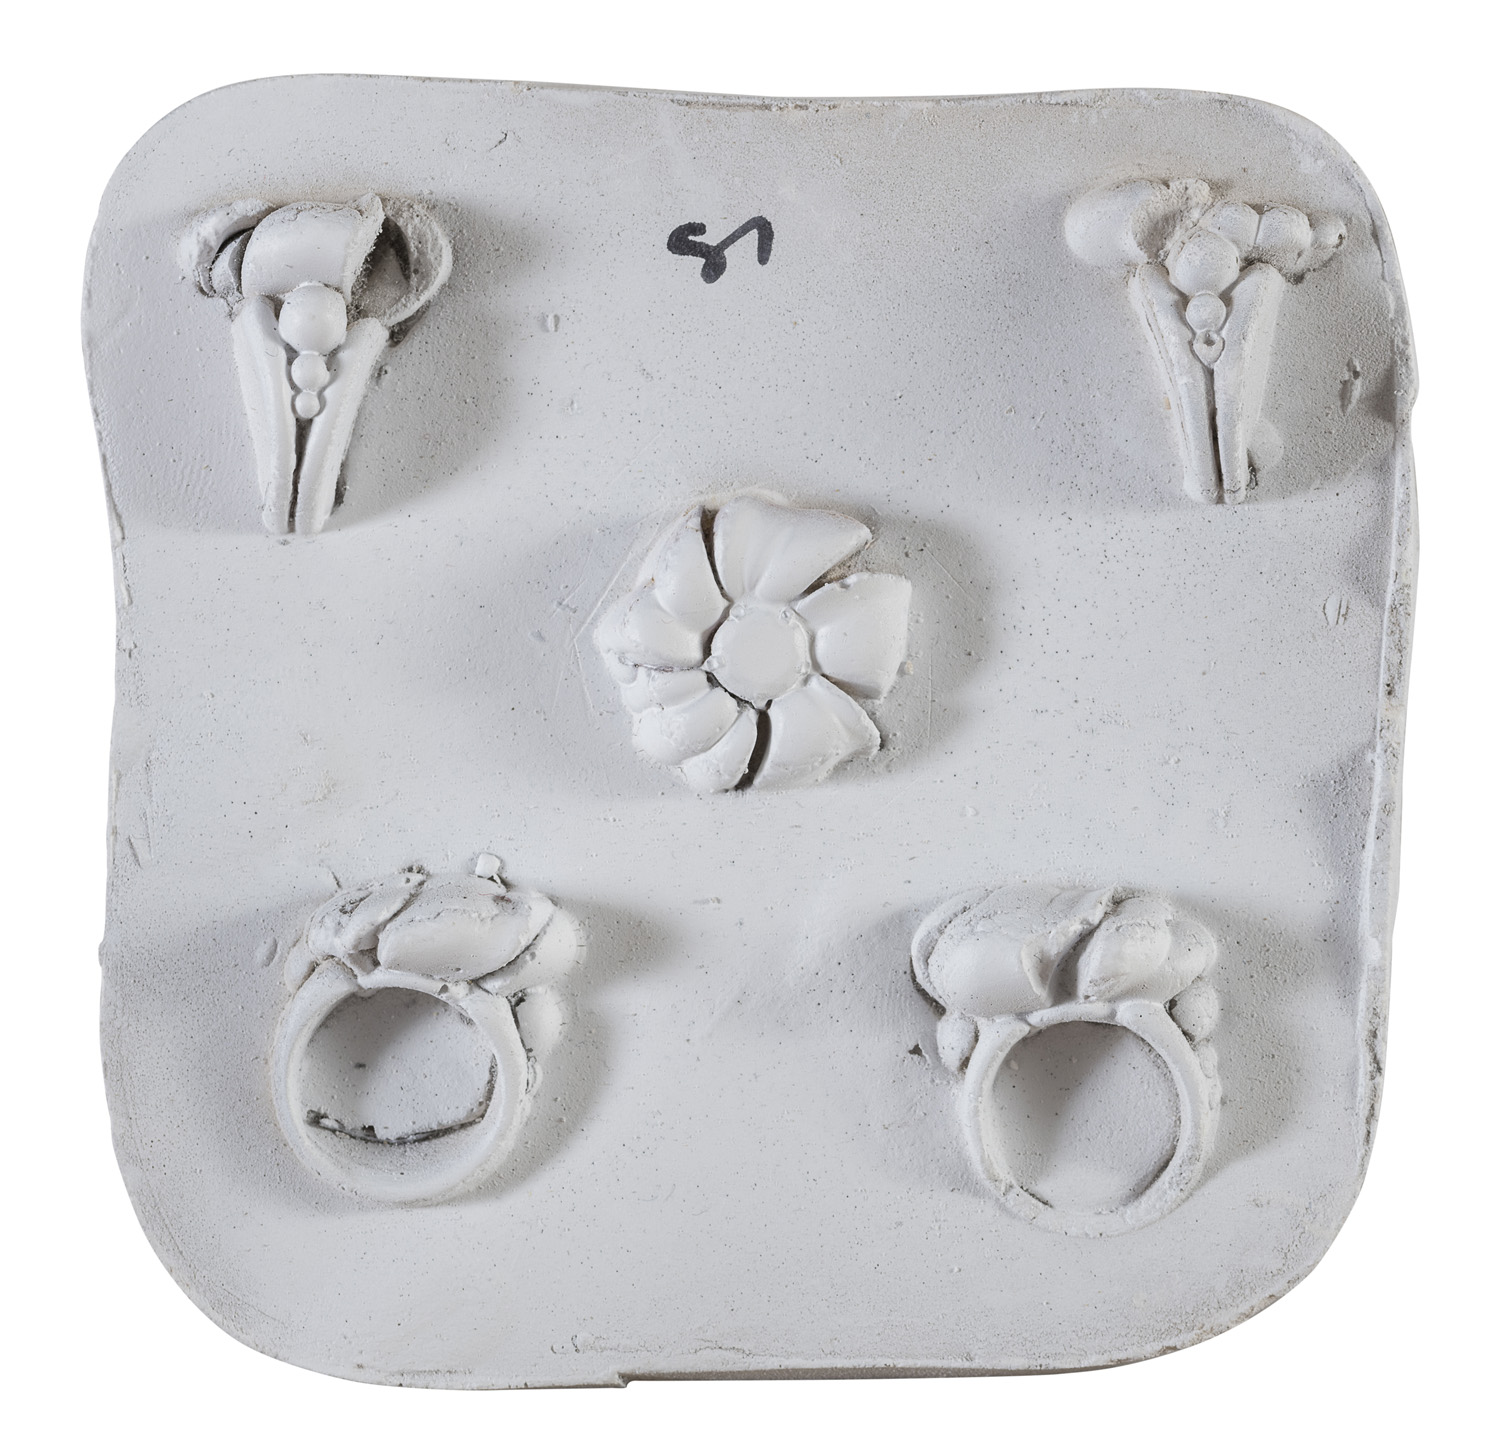 TWO MOLDS BY CESARE ZANCOLLA 1940's